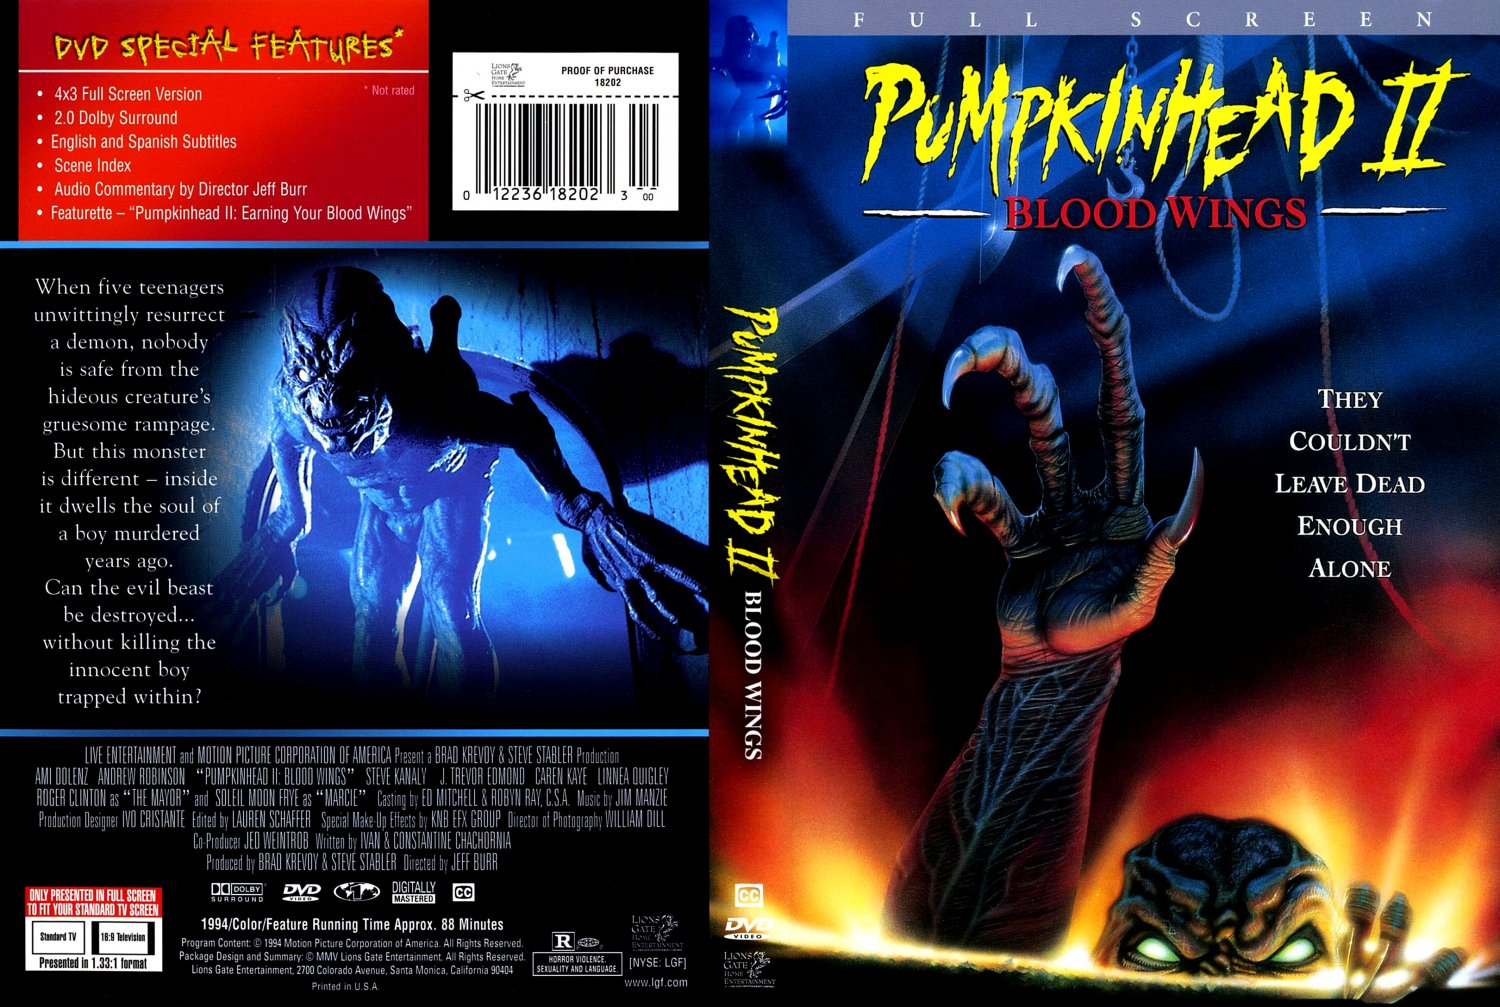 Pumpkinhead 2 Blood Wings